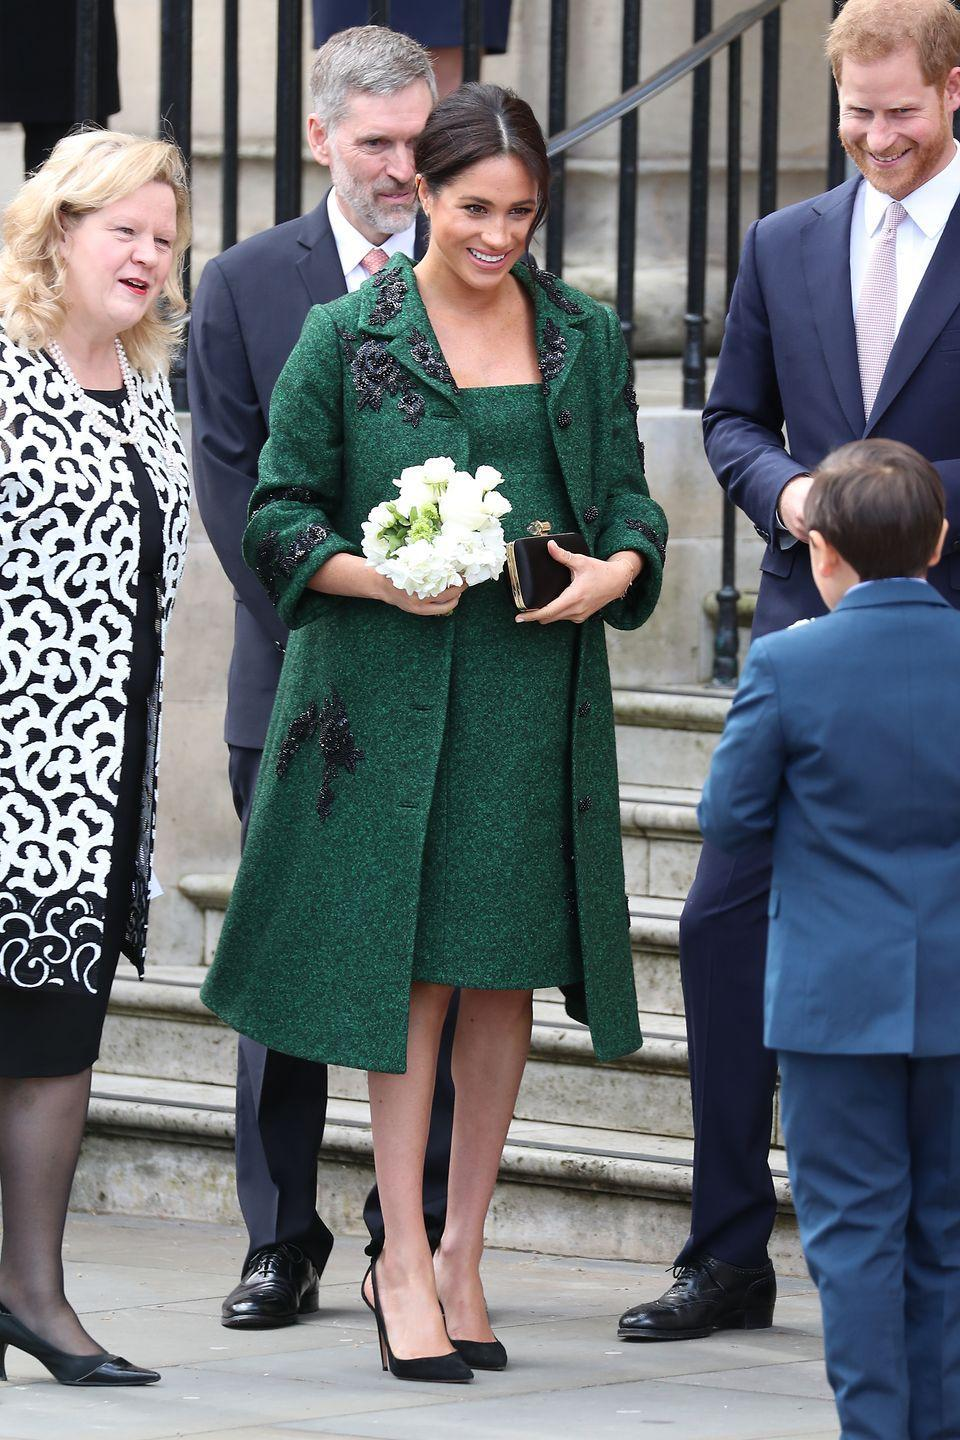 """<p>Though the Duchess went in a very different direction when it came to royal maternity style, some looks did inspire comparisons. One such ensemble: The beautiful coat and dress she wore on a visit to Canada House on Commonwealth Day, which <a href=""""https://www.townandcountrymag.com/style/fashion-trends/g22529658/meghan-markle-princess-diana-dressed-alike/?slide=1"""" rel=""""nofollow noopener"""" target=""""_blank"""" data-ylk=""""slk:was reminiscent"""" class=""""link rapid-noclick-resp"""">was reminiscent</a> of a green maternity ensemble worn by Princess Diana.</p>"""